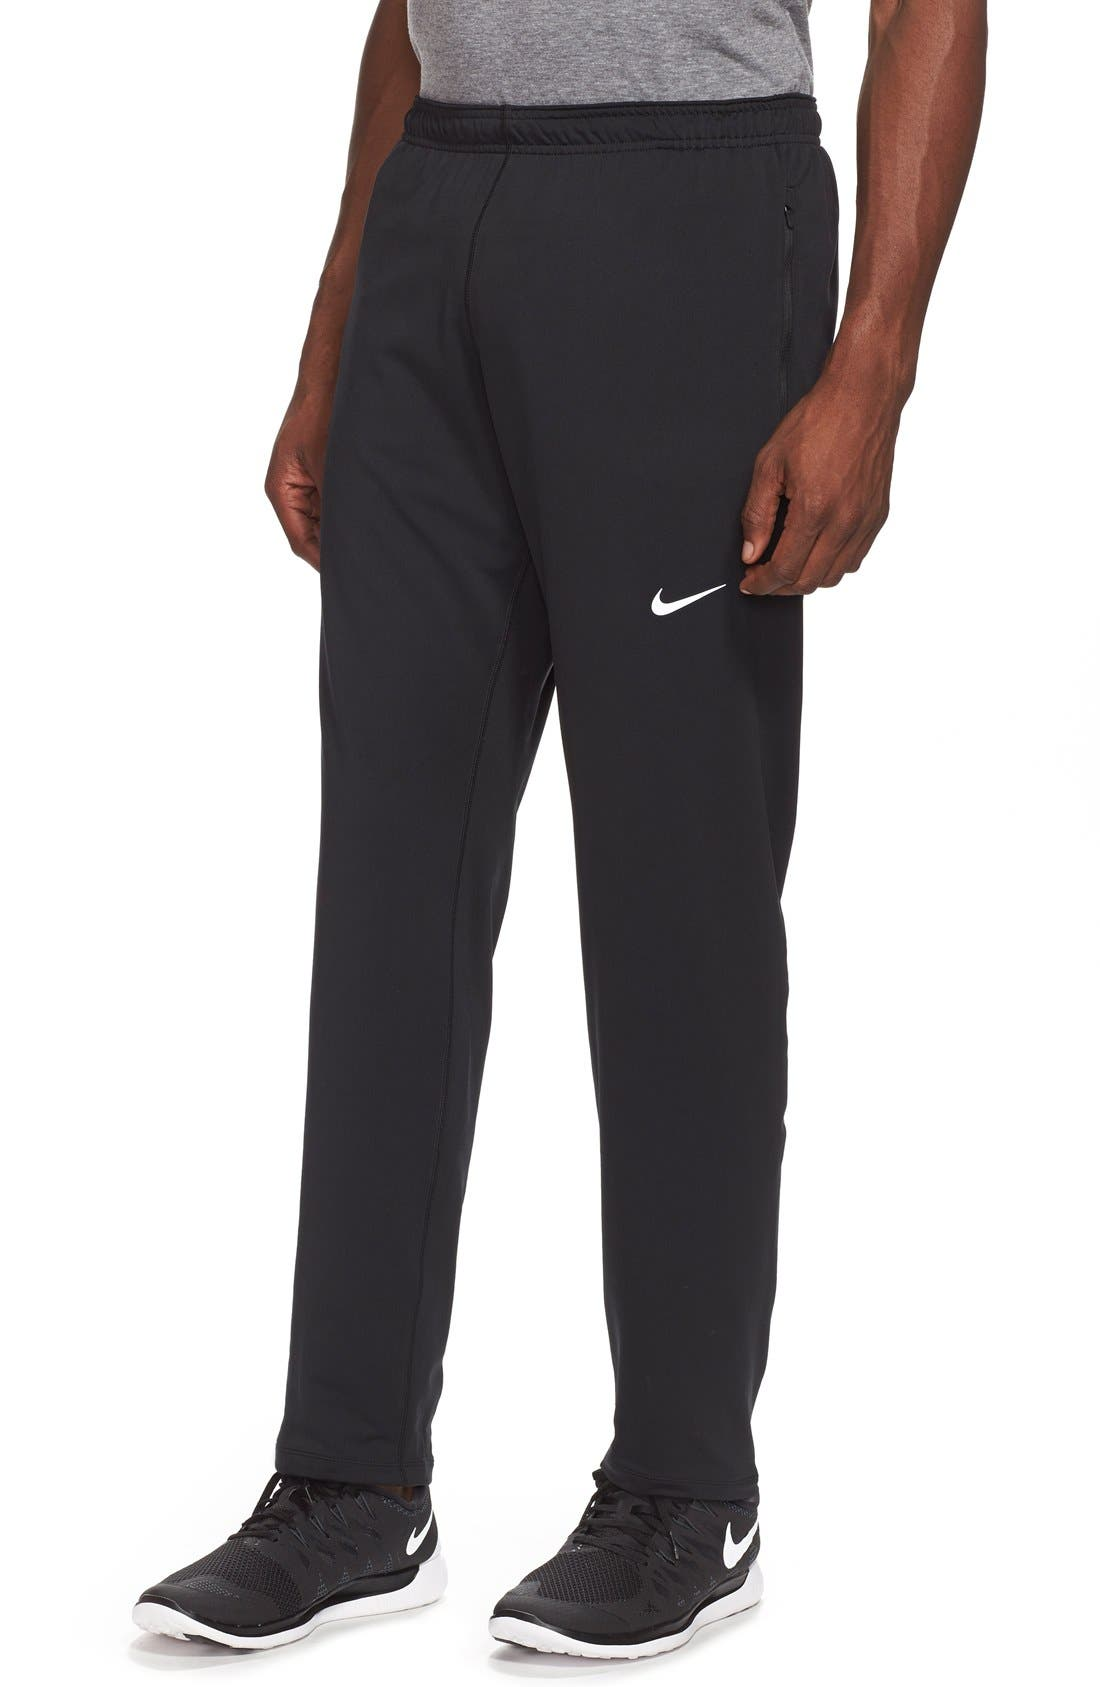 'Y20' Tapered Fit Dri-FIT Running Stretch Pants, Main, color, 010